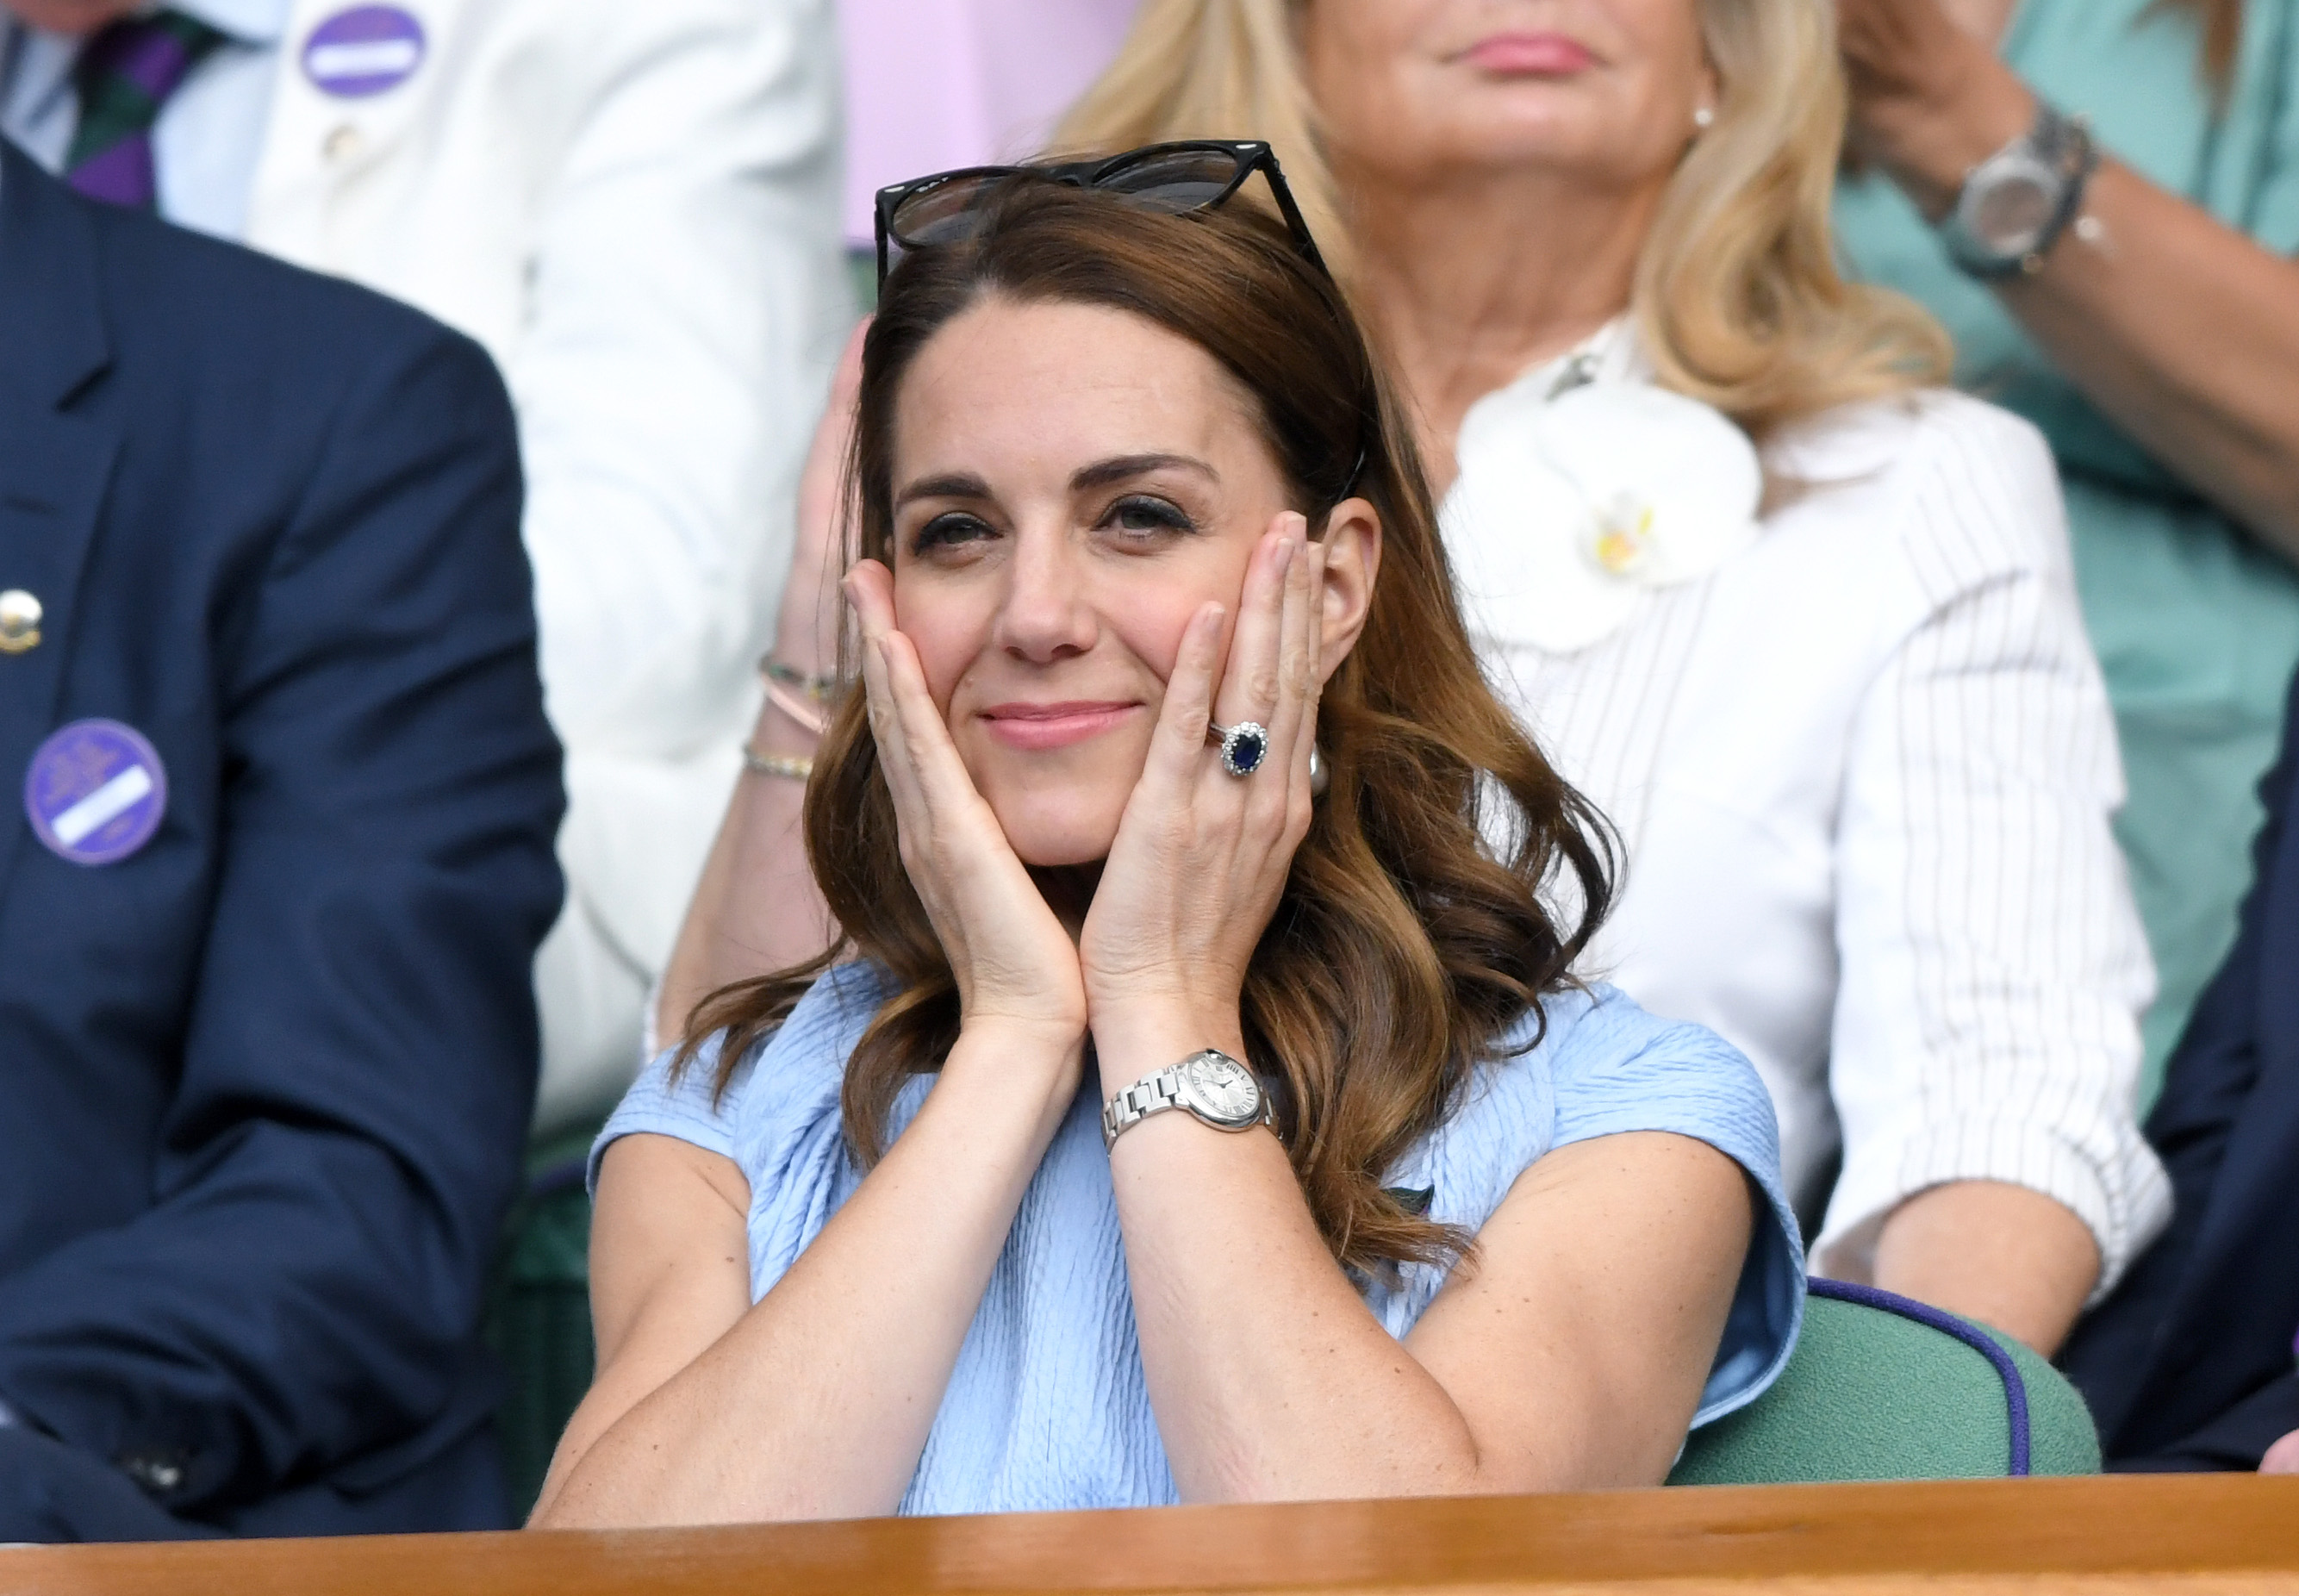 LONDON, ENGLAND - JULY 14: Catherine, Duchess of Cambridge in the Royal Box on Centre court during Men's Finals Day of the Wimbledon Tennis Championships at All England Lawn Tennis and Croquet Club on July 14, 2019 in London, England. (Photo by Karwai Tang/Getty Images)